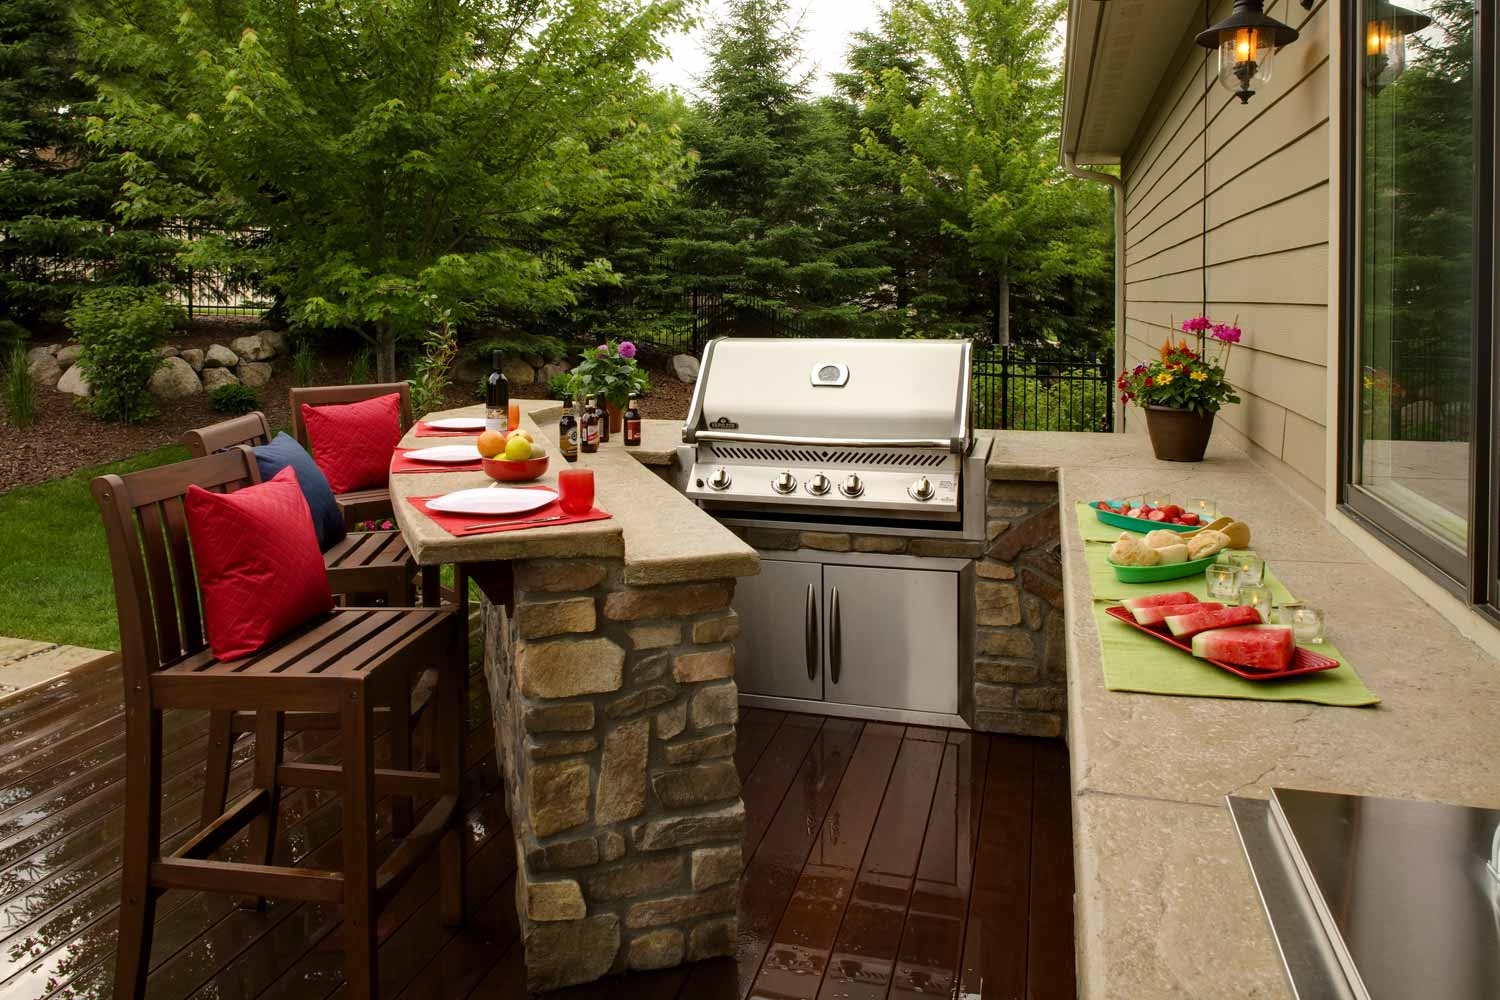 Outdoor kitchen with build in grill and two level bar counter